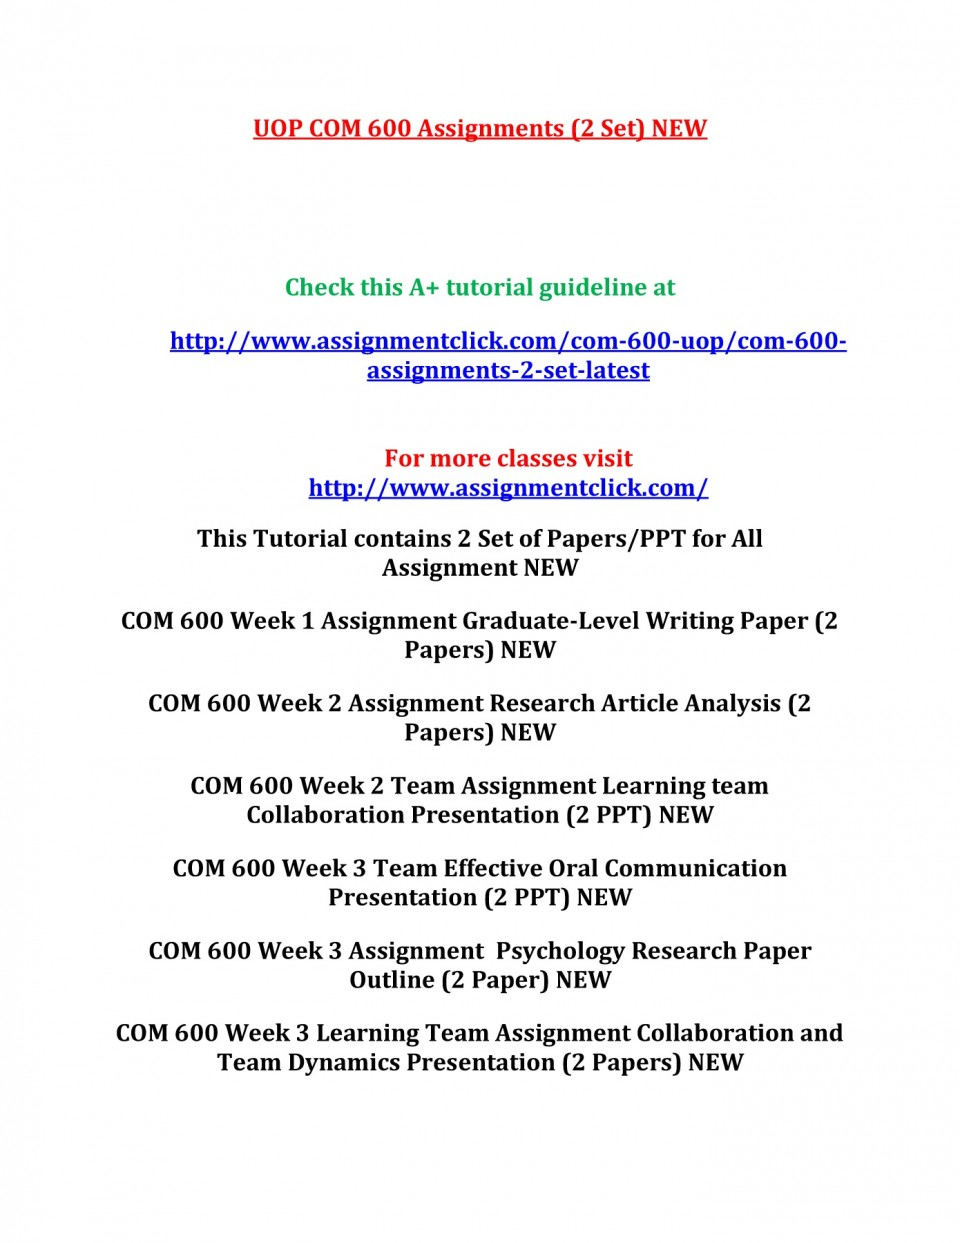 006 Research Paper Psychology Outline Com Striking 600 Com/600 960